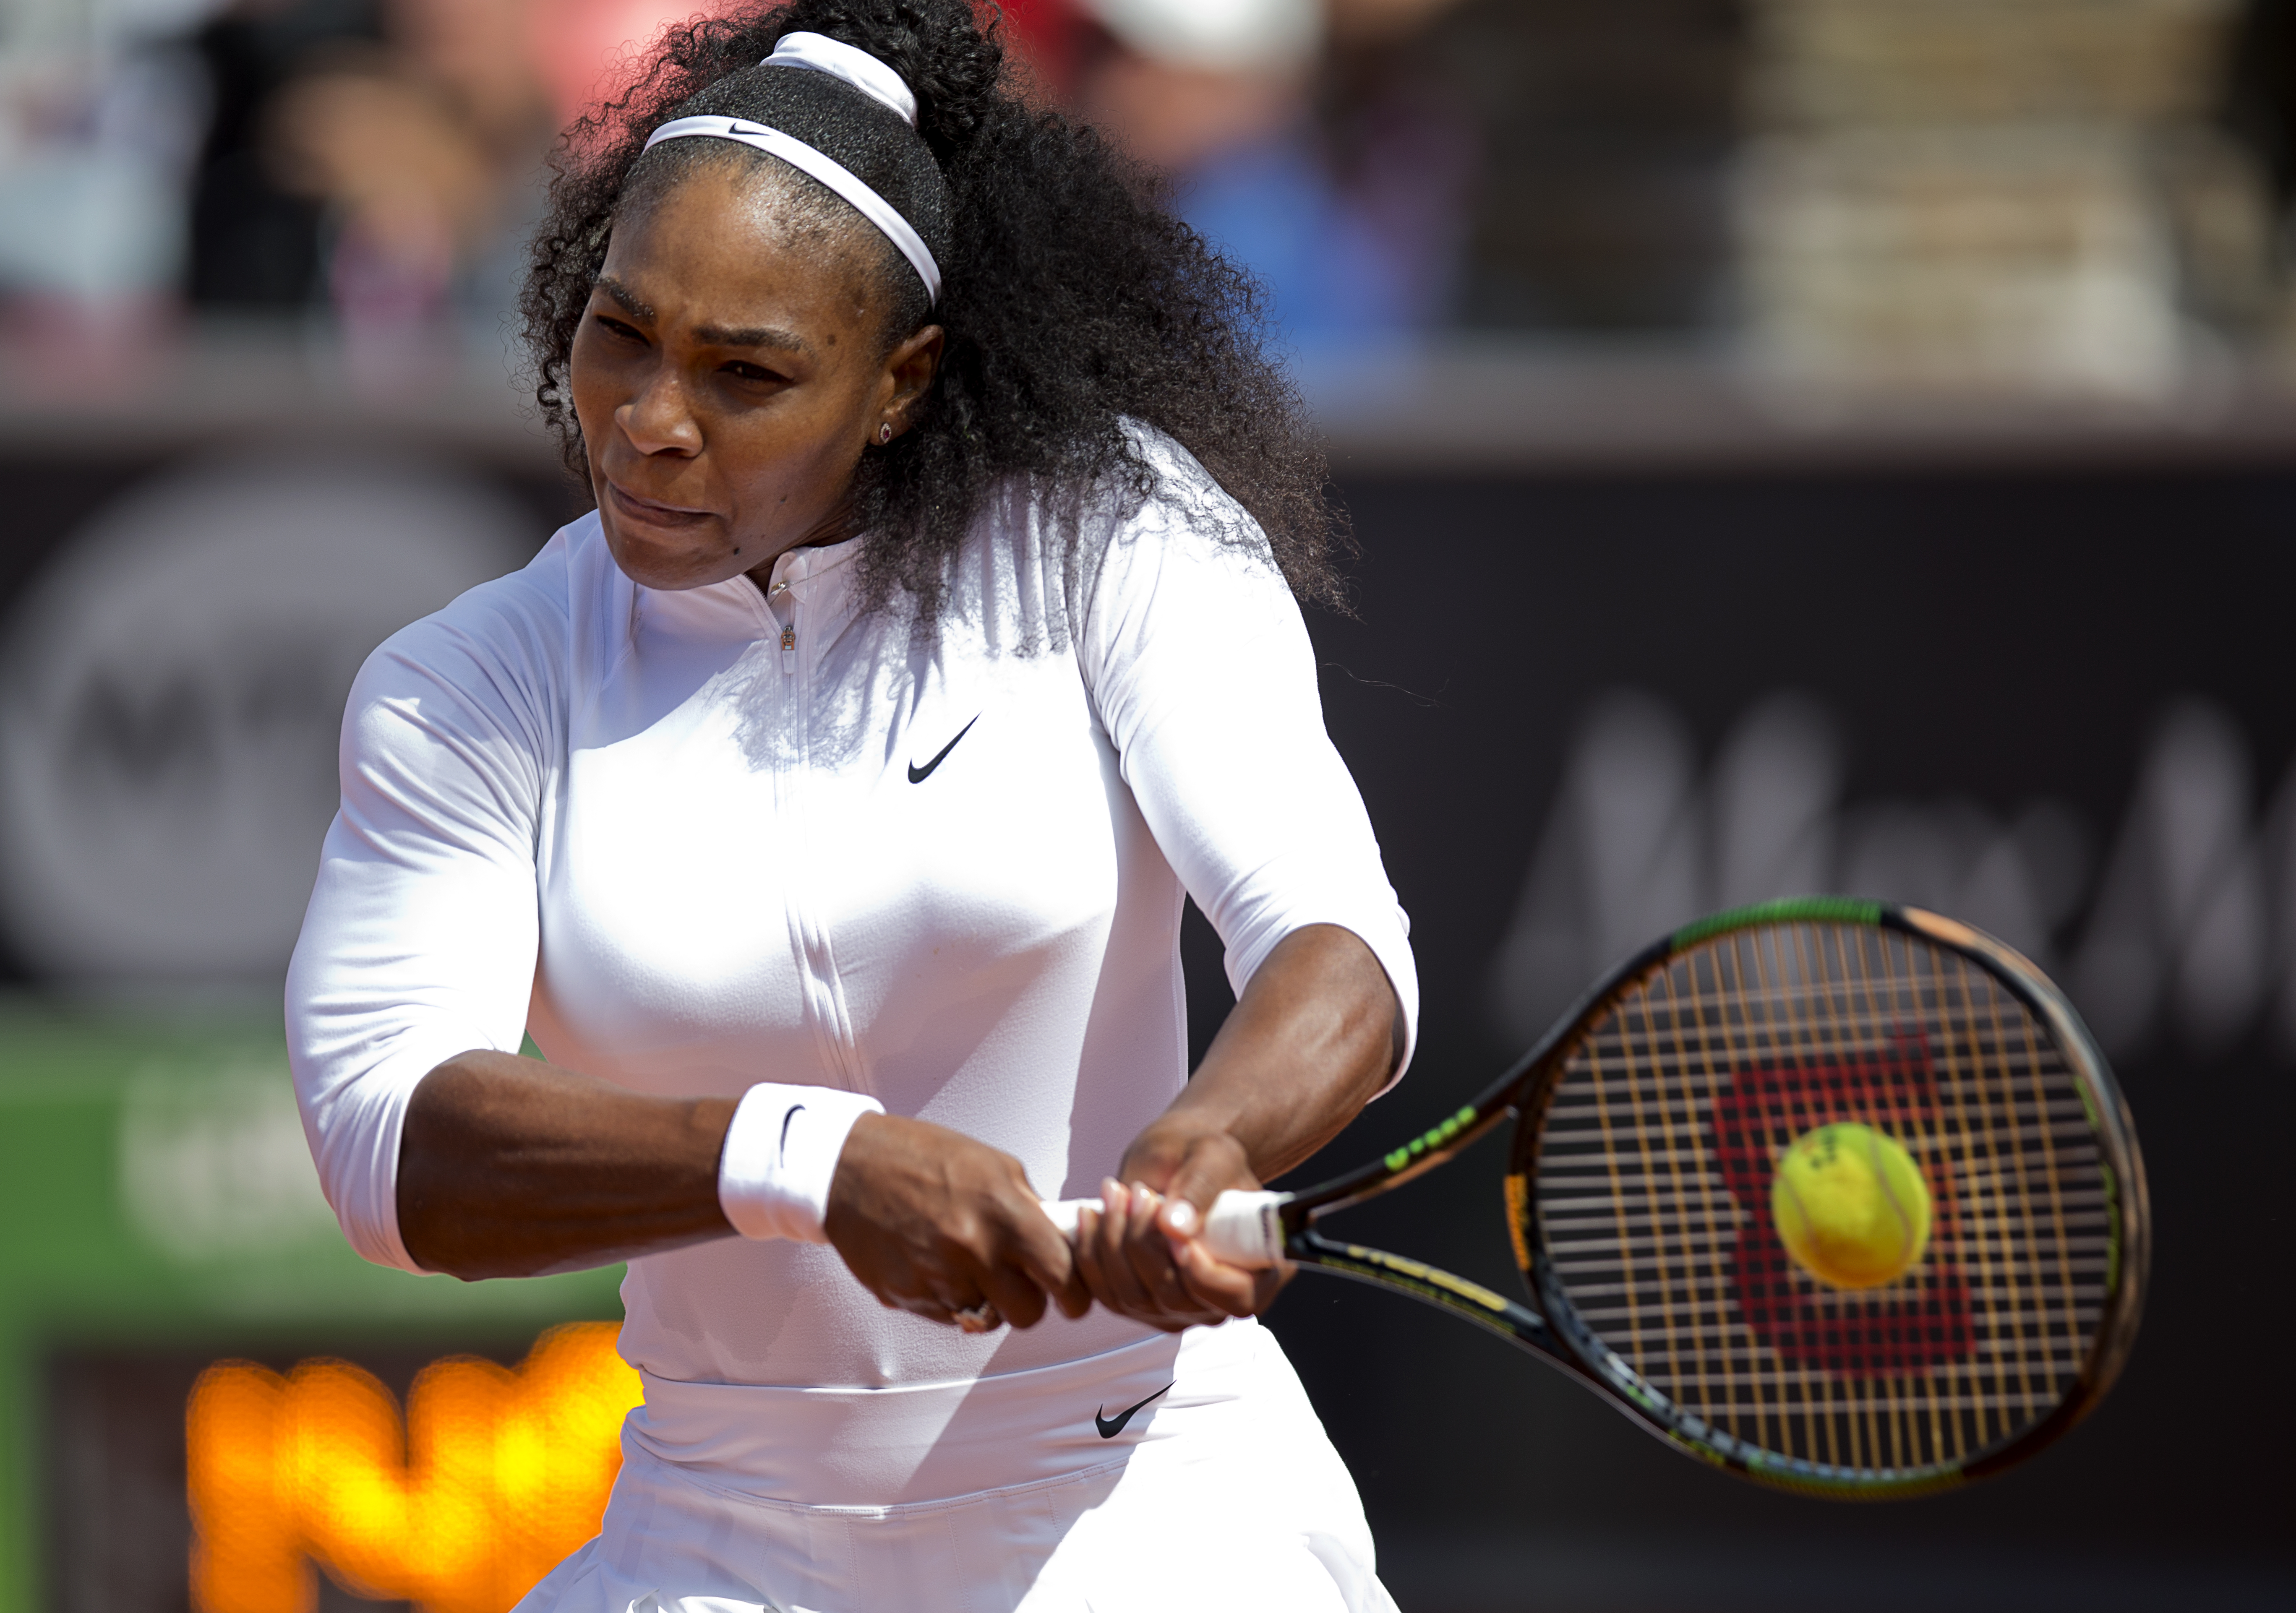 Serena Williams from the US plays her opening match against Ysaline Bonaventure of Belgium,  at the Swedish Open in Bastad, Sweden, Wednesday, July 15, 2015. Williams won 6—2, 6—1. (Adam Ihse, TT News Agency via AP)